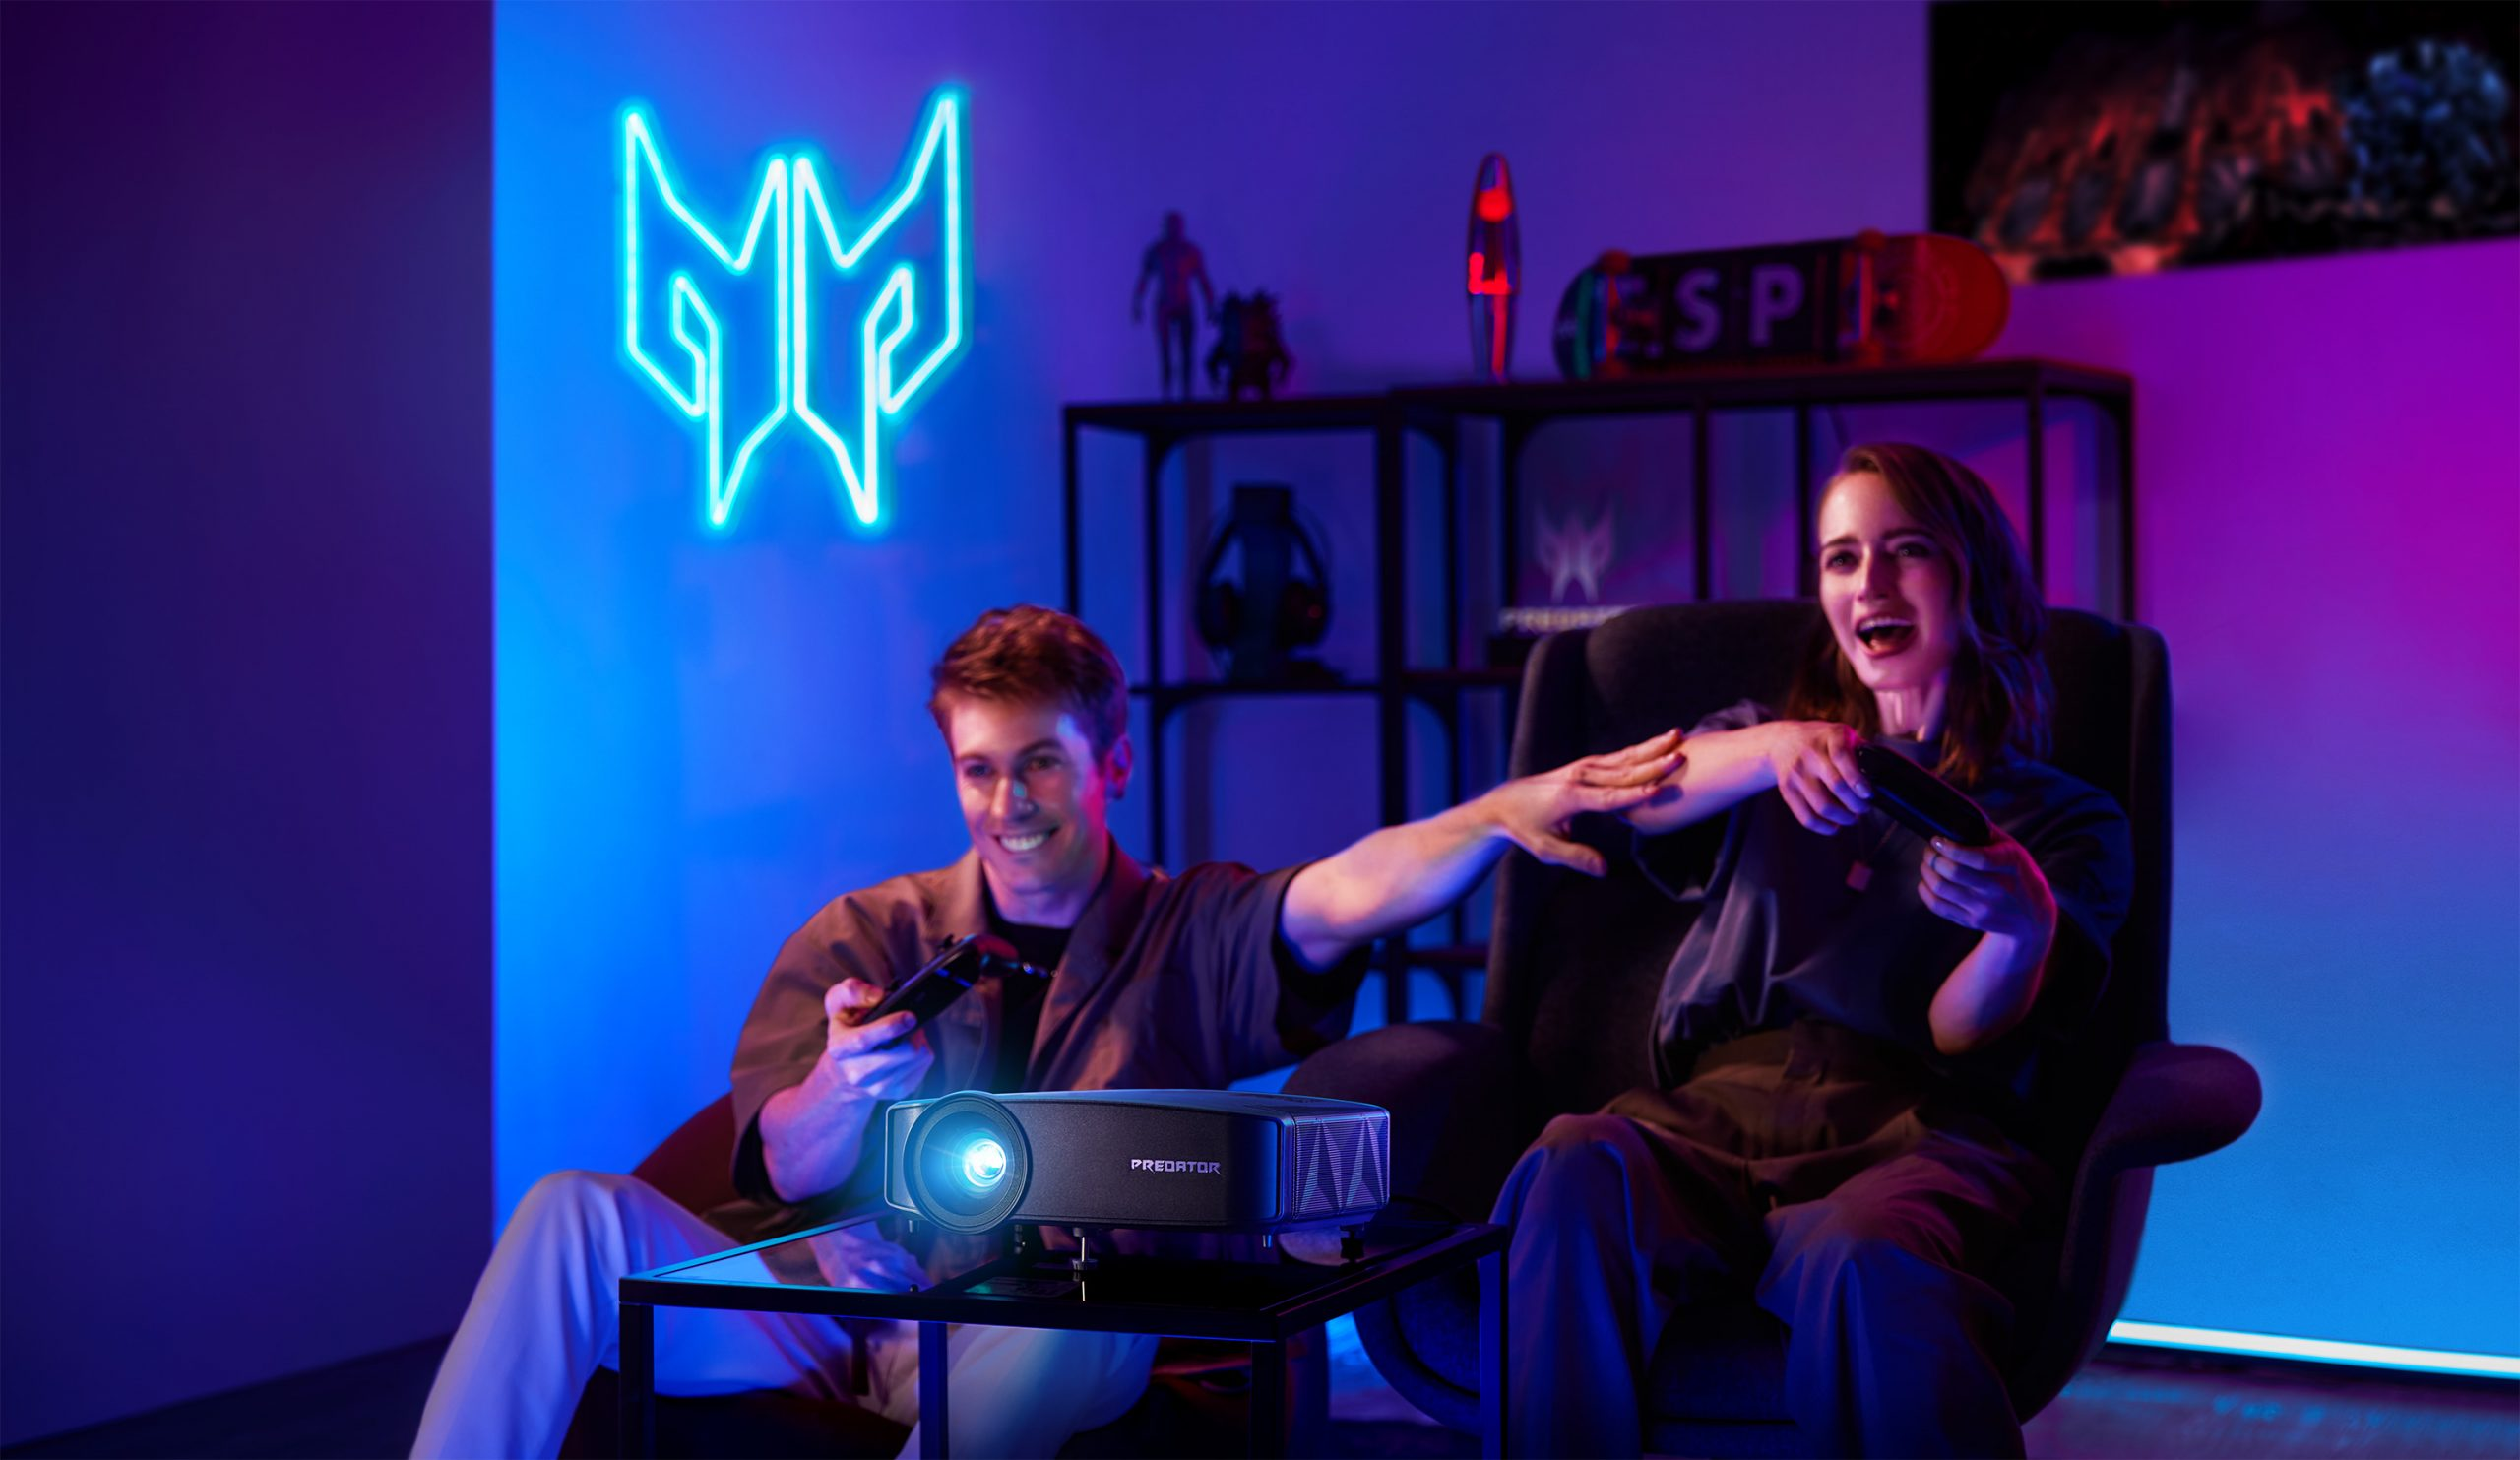 Two friends playing games using the Acer GD711 gaming projector